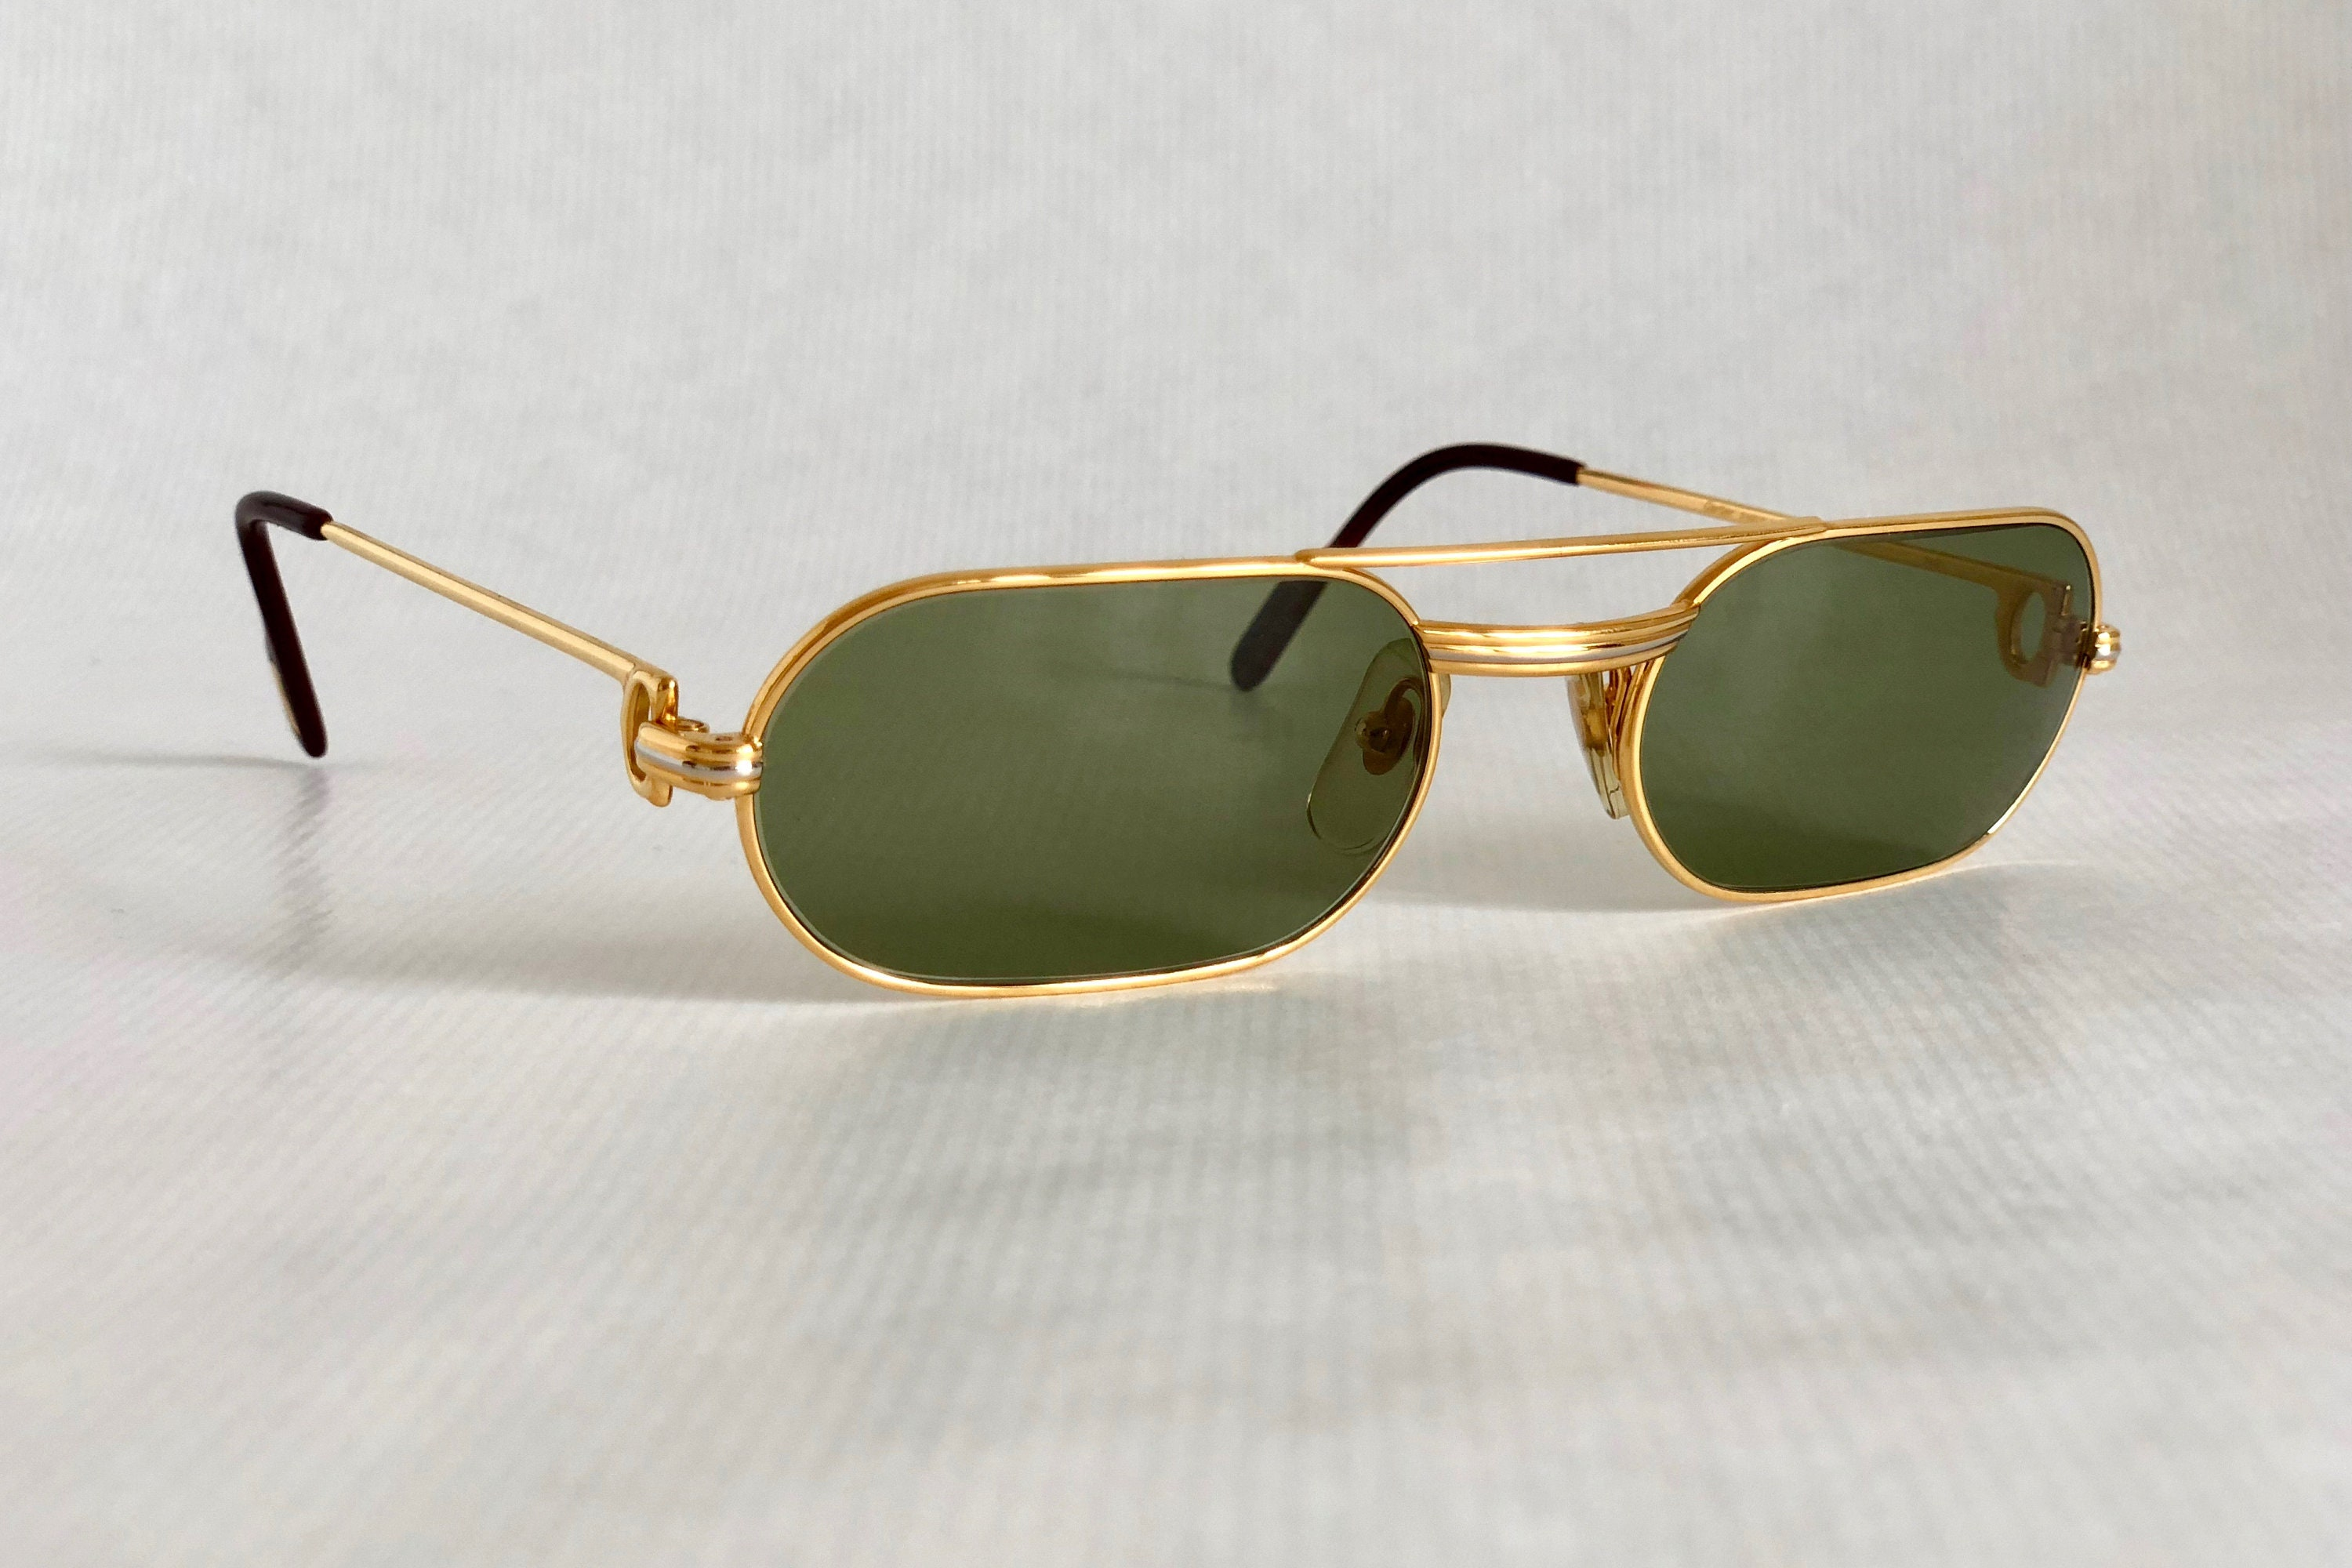 0b41a29f02 Cartier Must Louis Cartier 18K Gold Vintage Sunglasses Full Set New Old  Stock. gallery photo ...